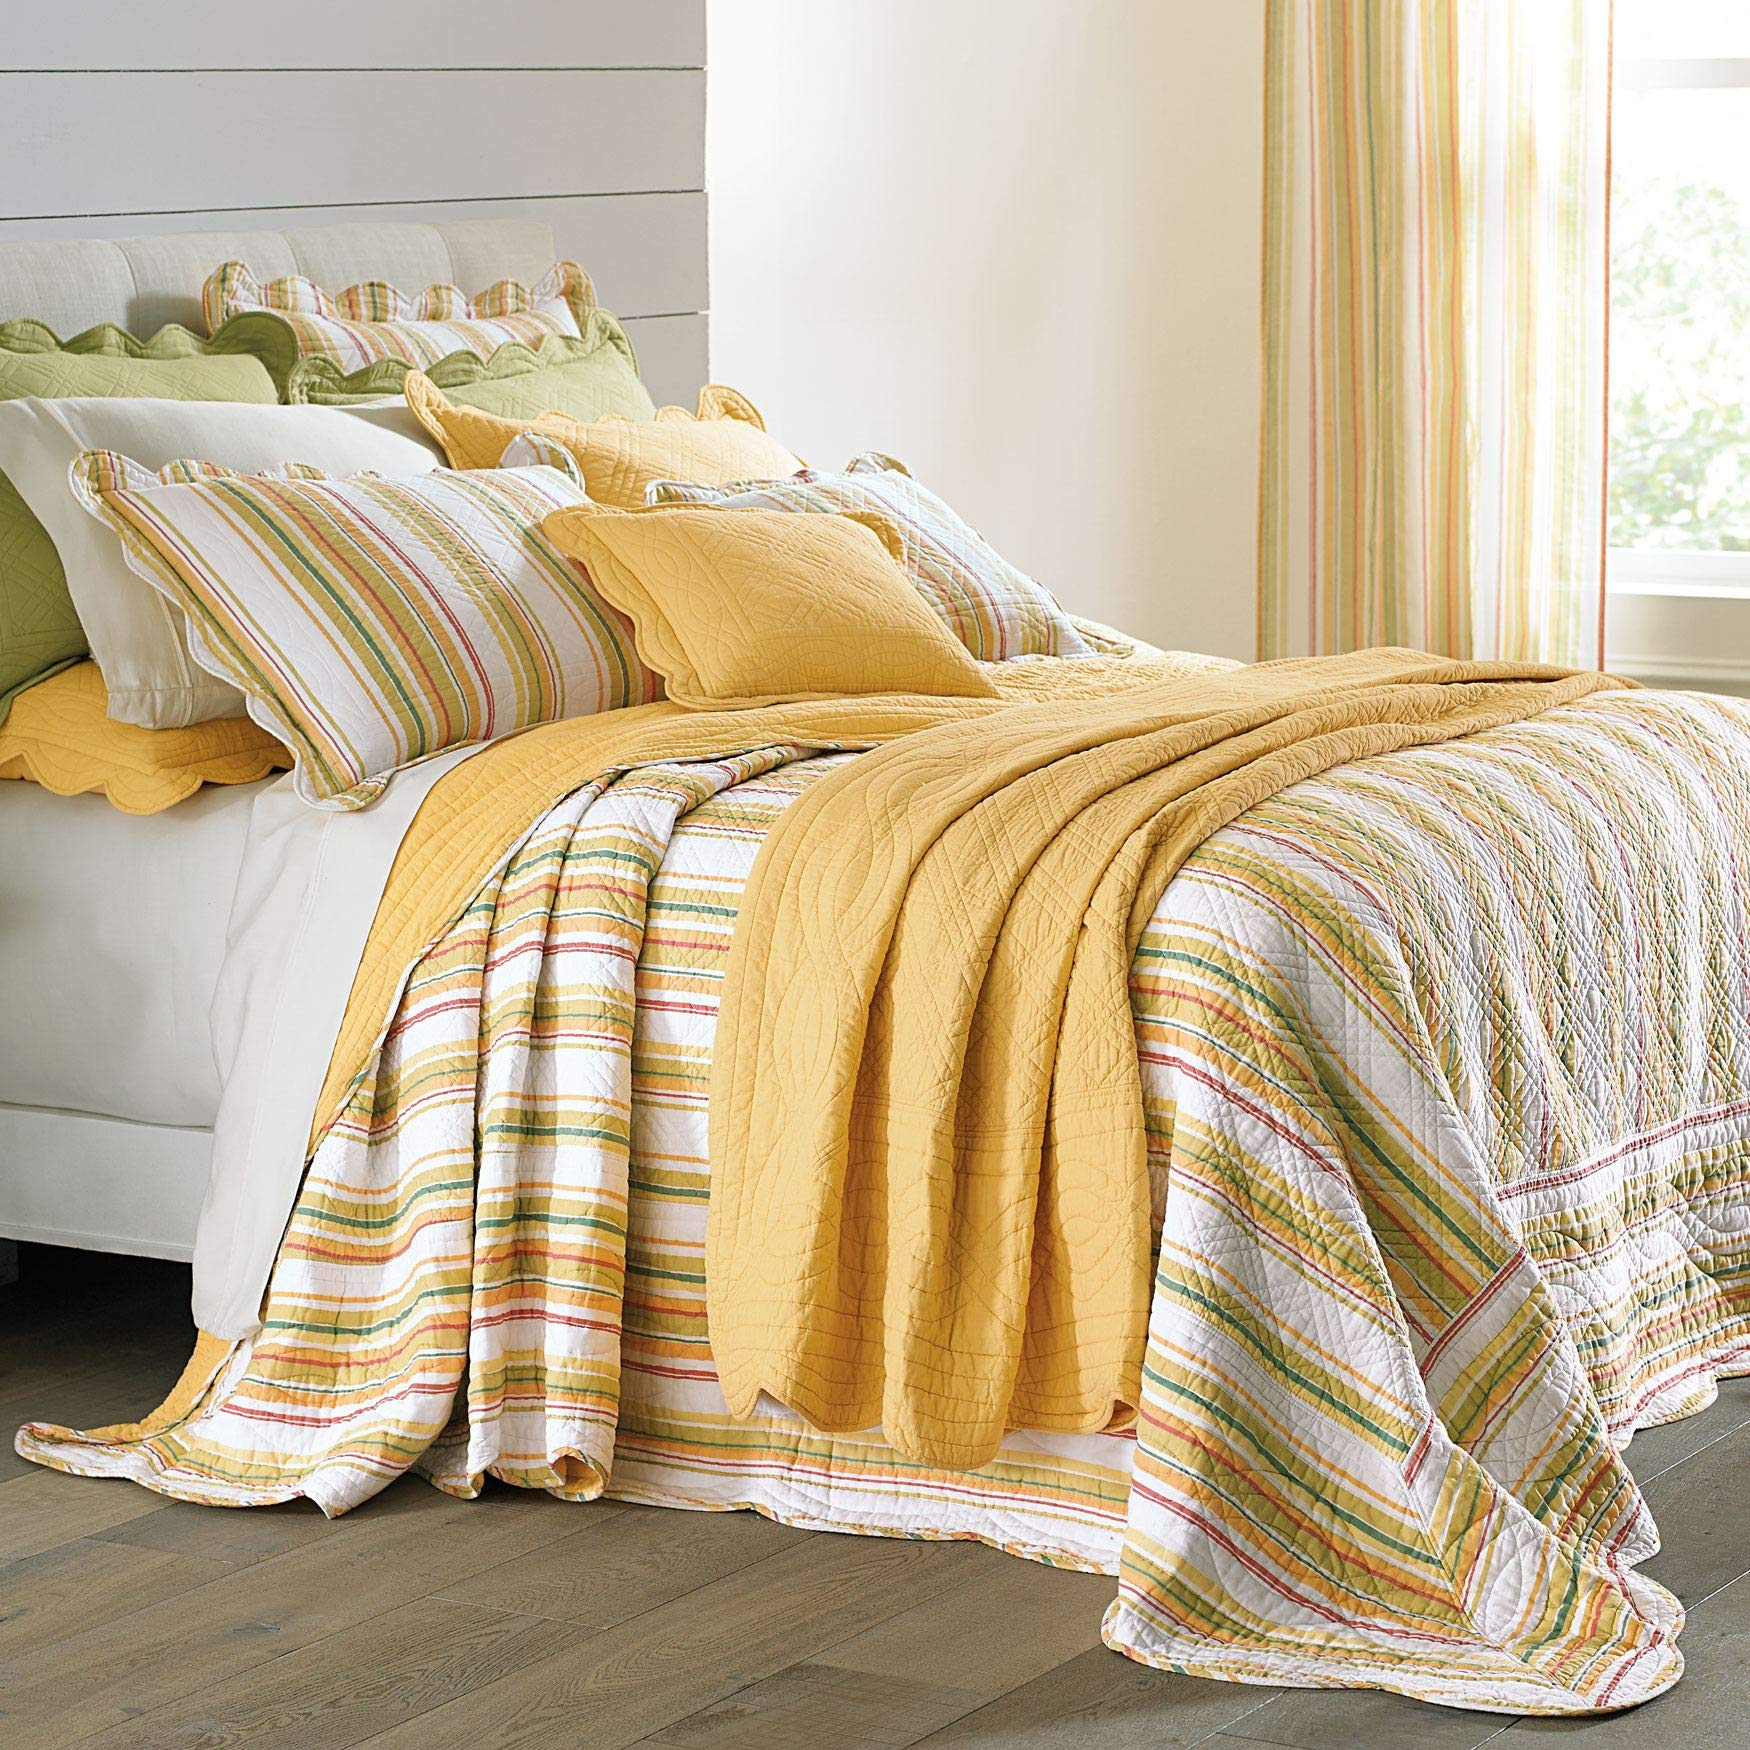 BrylaneHome Florence Oversized Bedspread - Dandelion Stripe, King by BrylaneHome (Image #1)